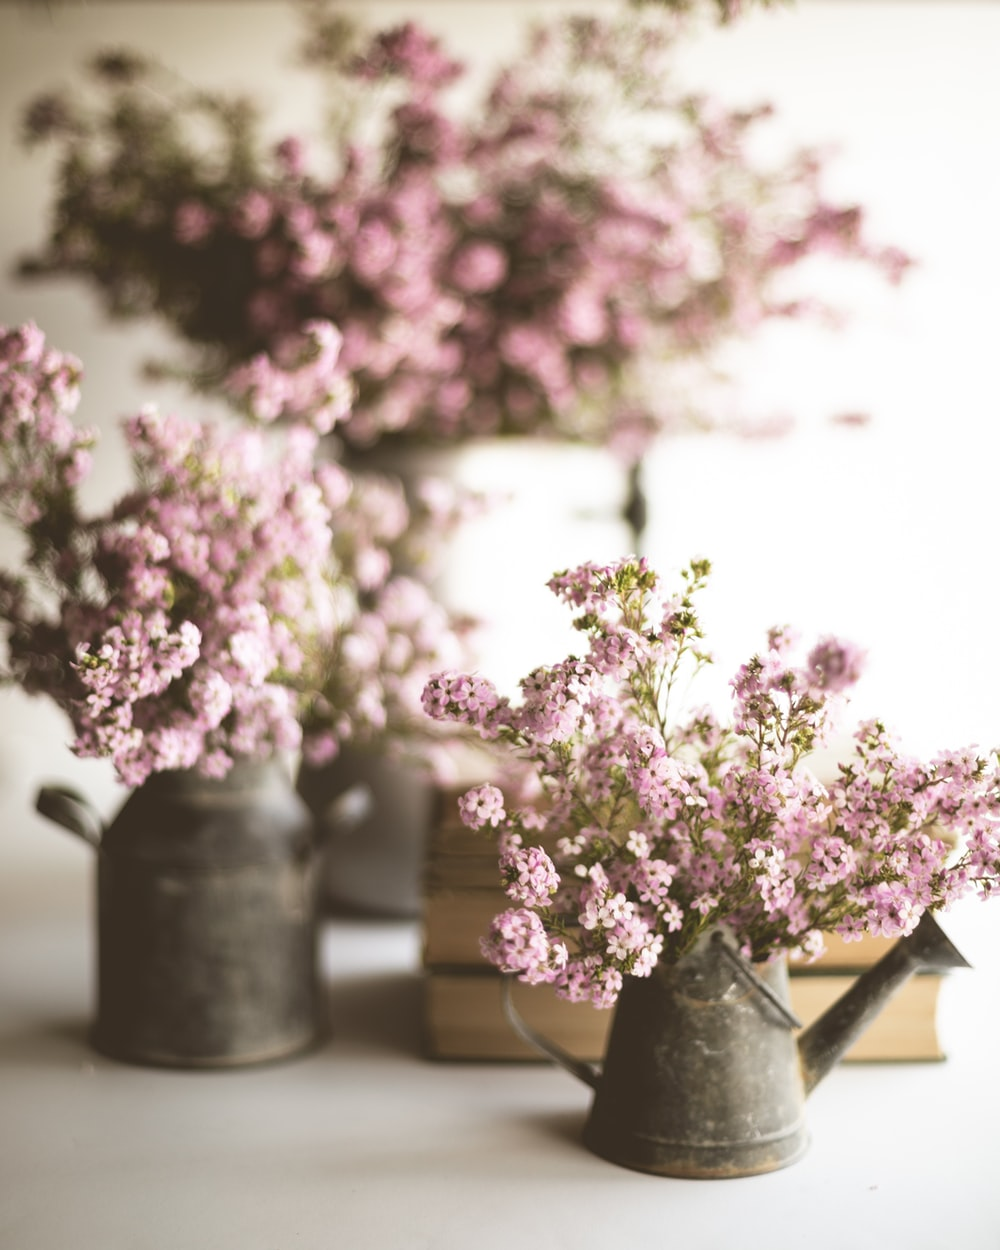 pink and white flowers in gray ceramic vase